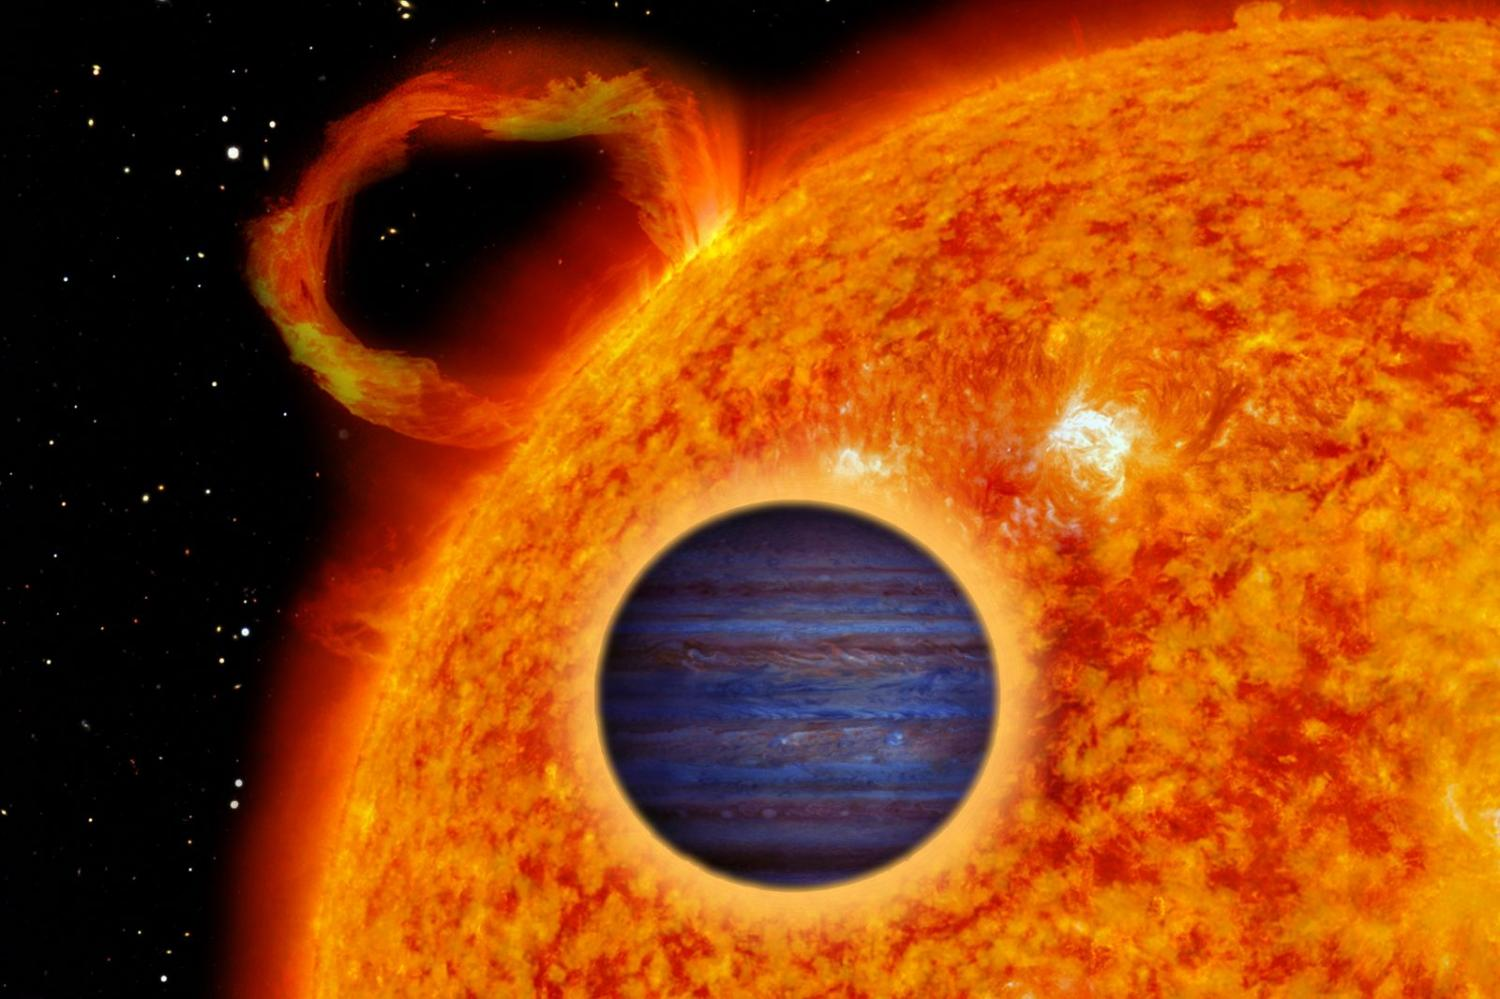 Artist's impression of a 'hot Jupiter'. Credit: Ricardo Cardoso Reis (CAUP)